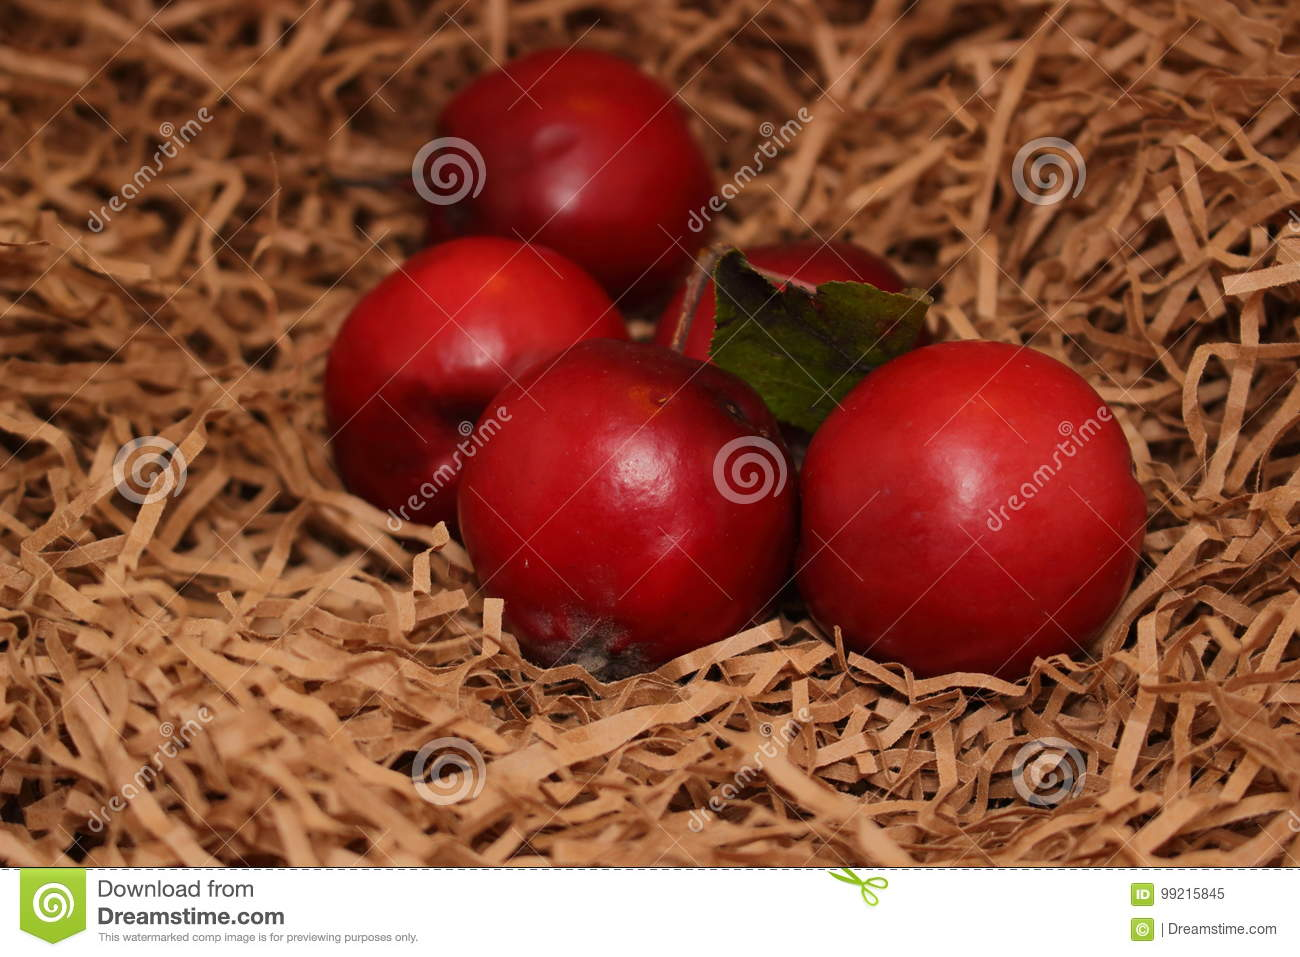 Red apples on paper